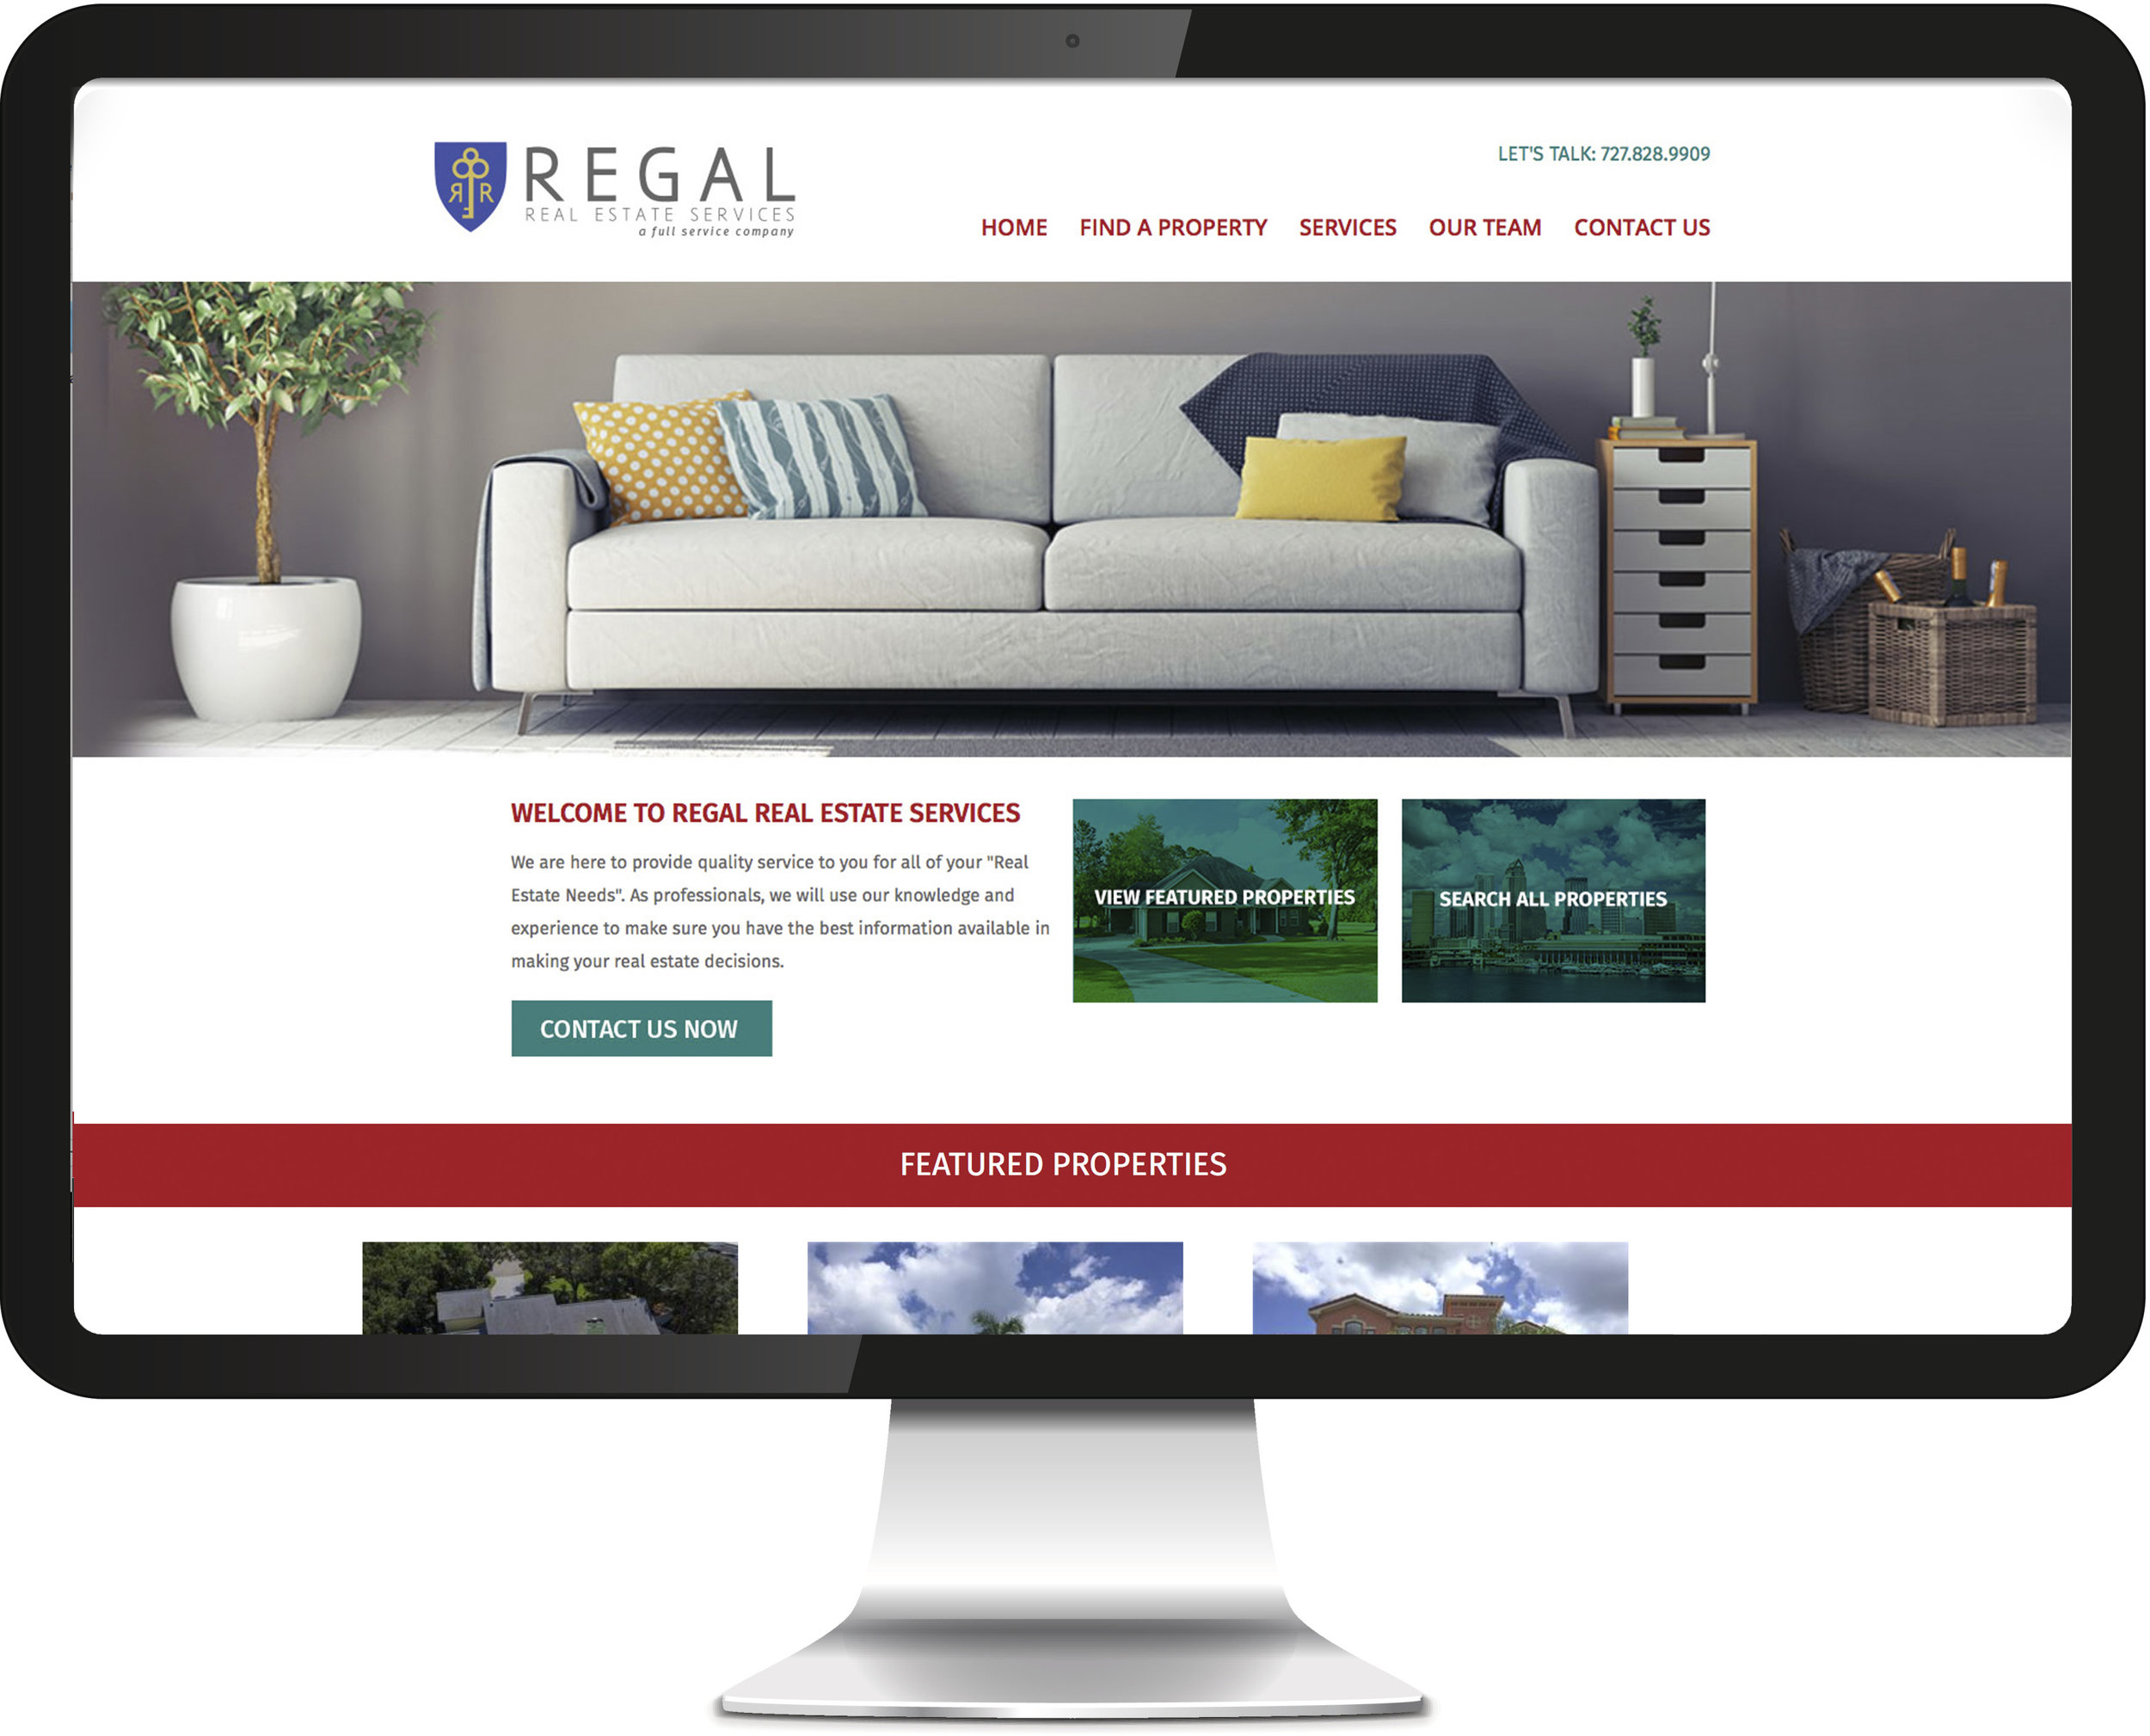 regal_web_mockup.jpg